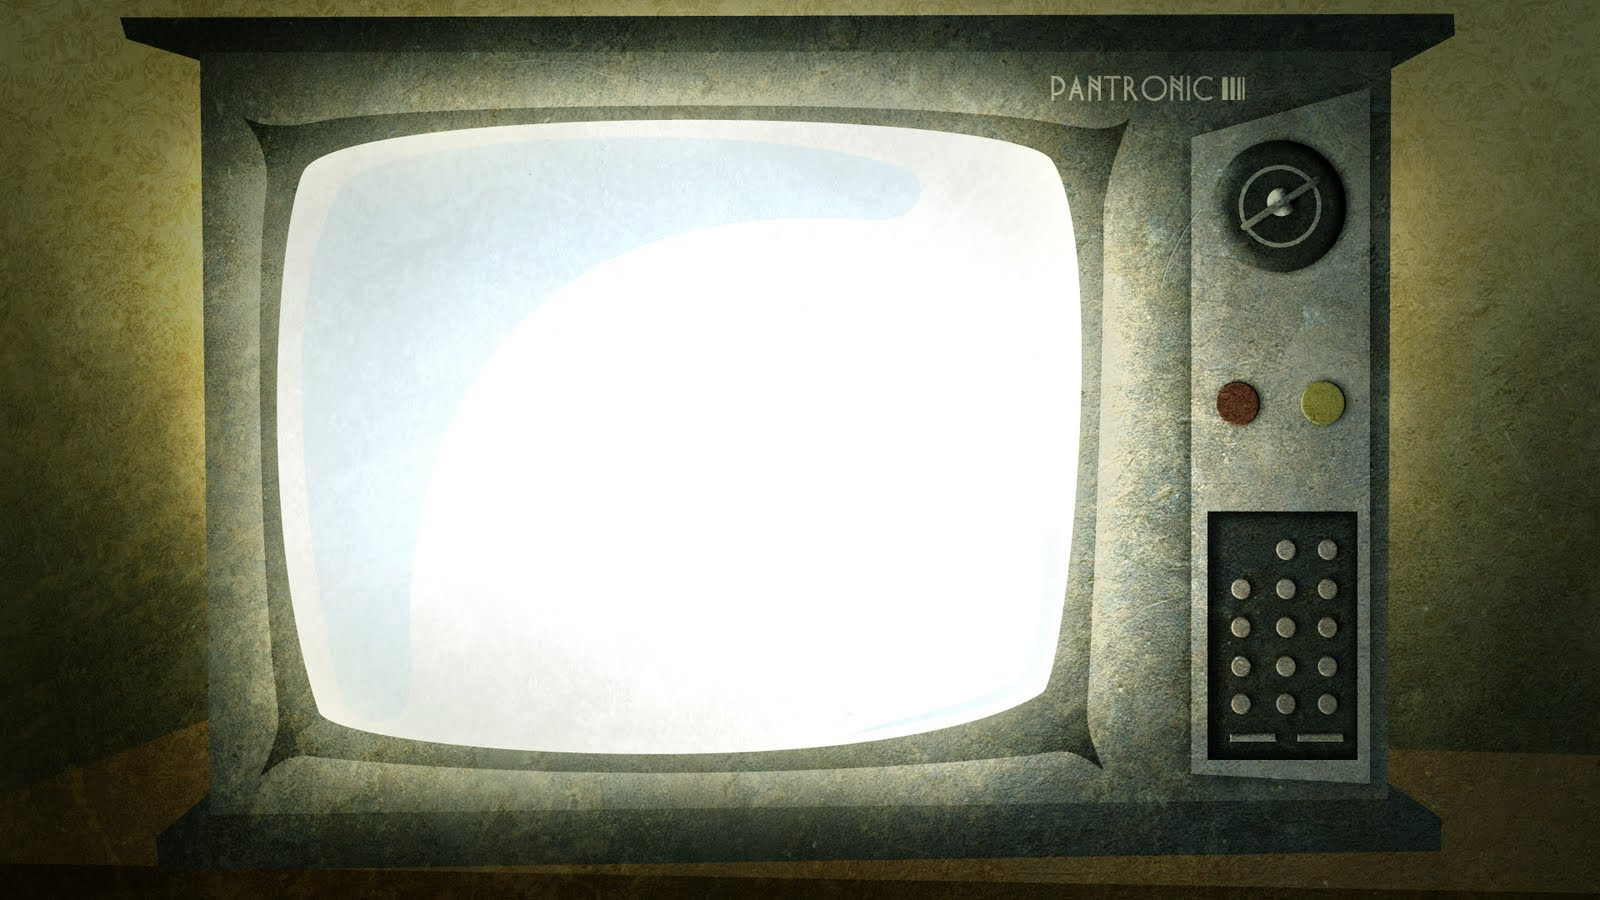 Old TV Set, Background Powerpoint 4235179, 1600x900  All